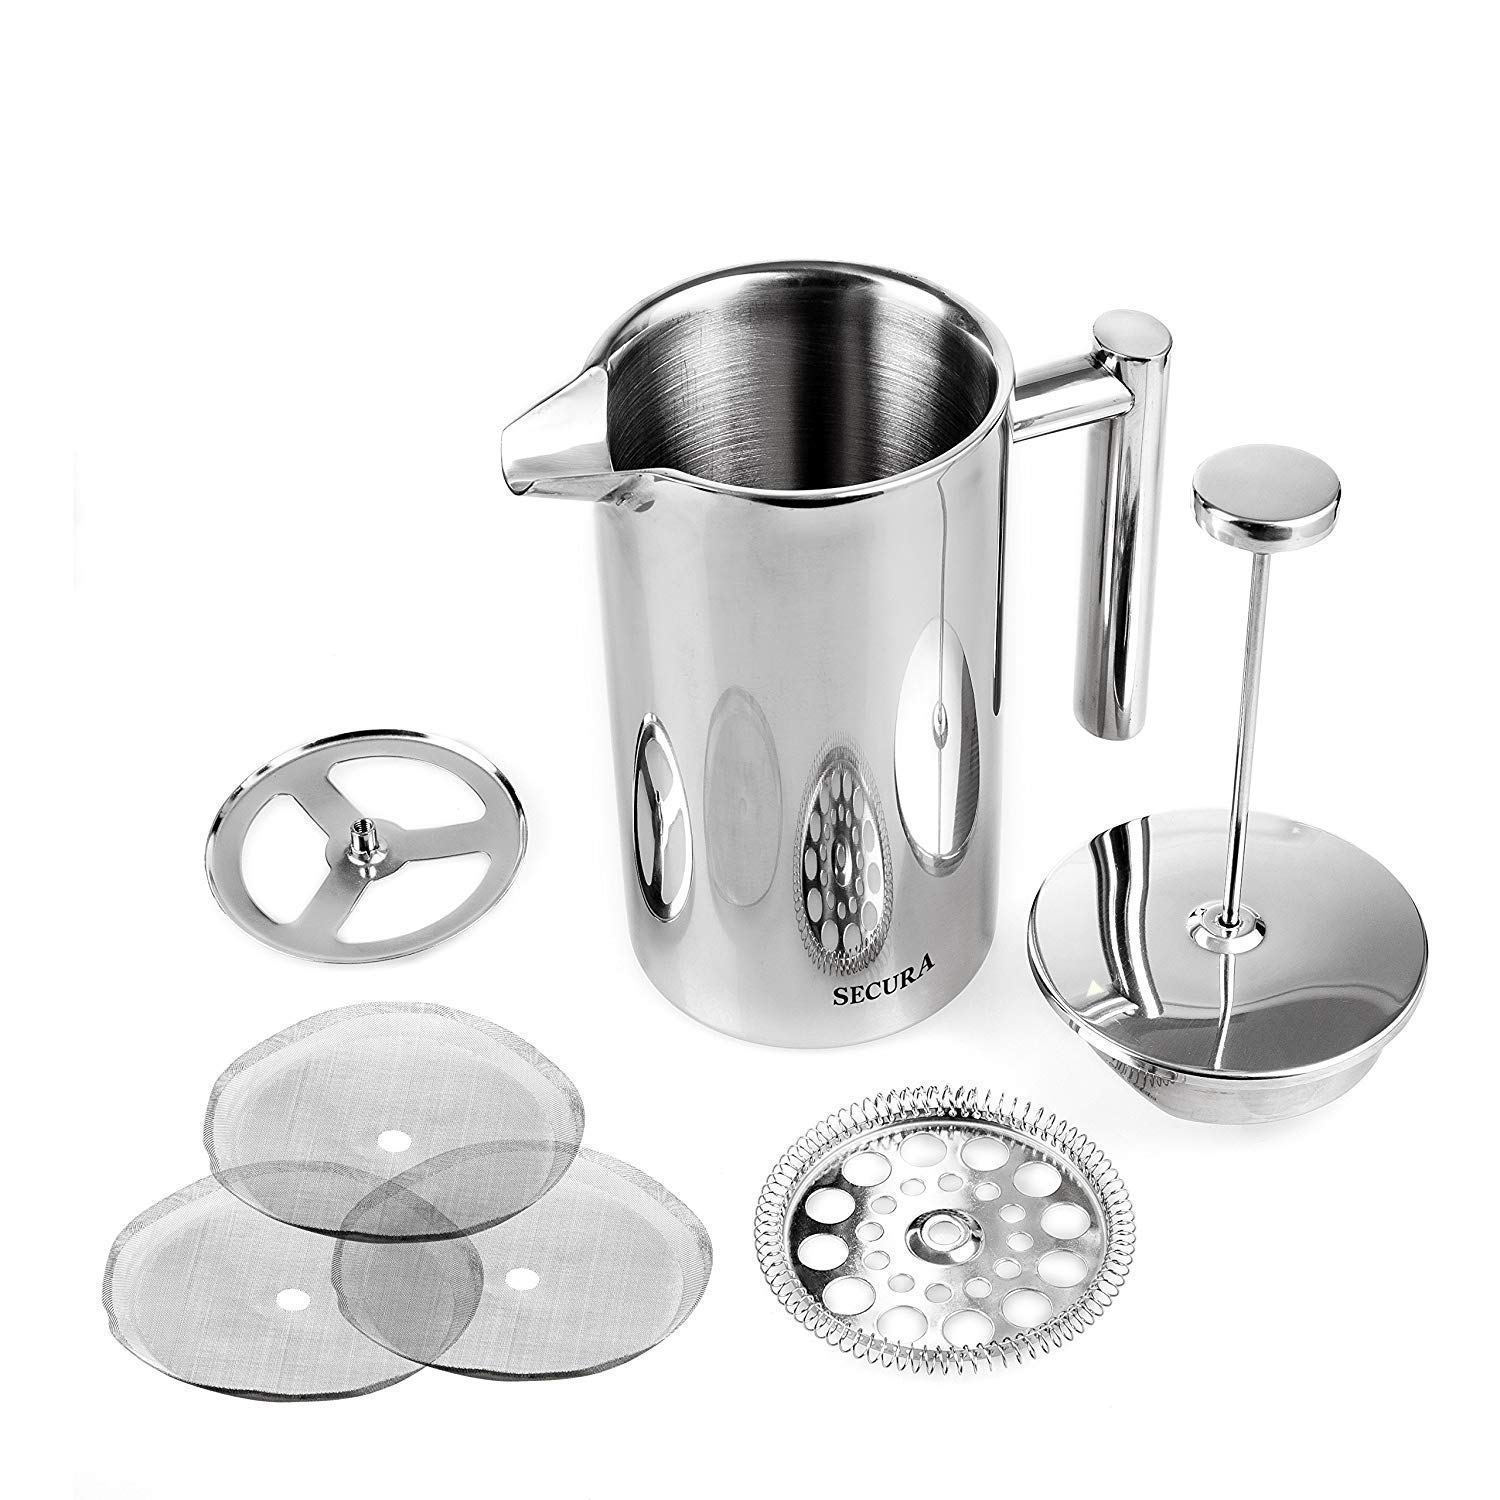 Stainless Steel French Press 18/10 w/ Bonus Stainless Steel Screen